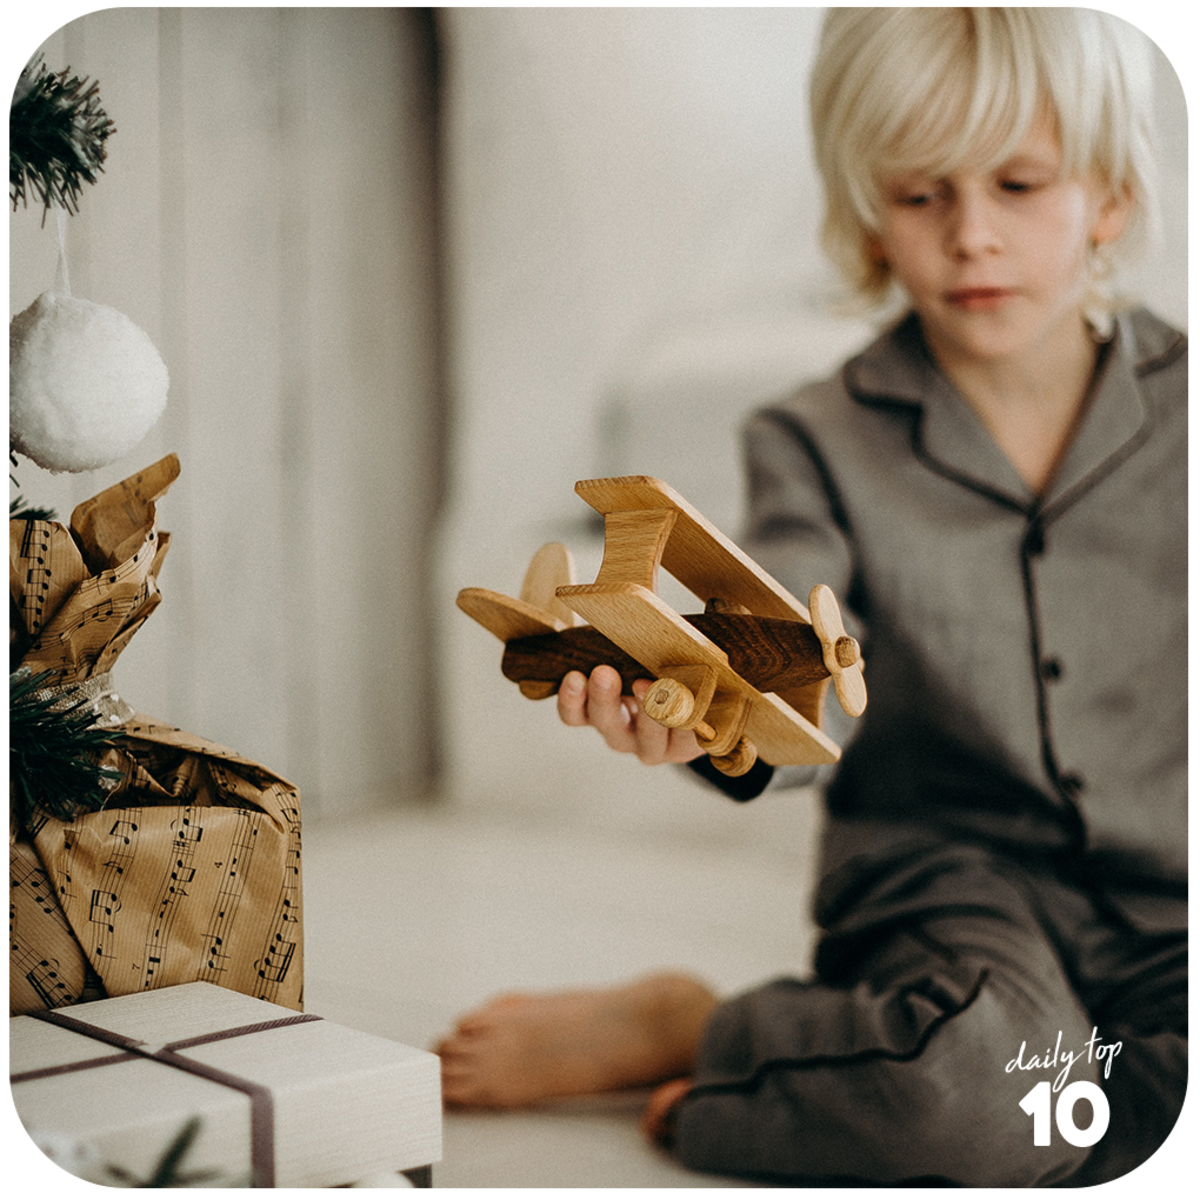 Christmas is the best holiday to teach your kid that giving is better than receiving.